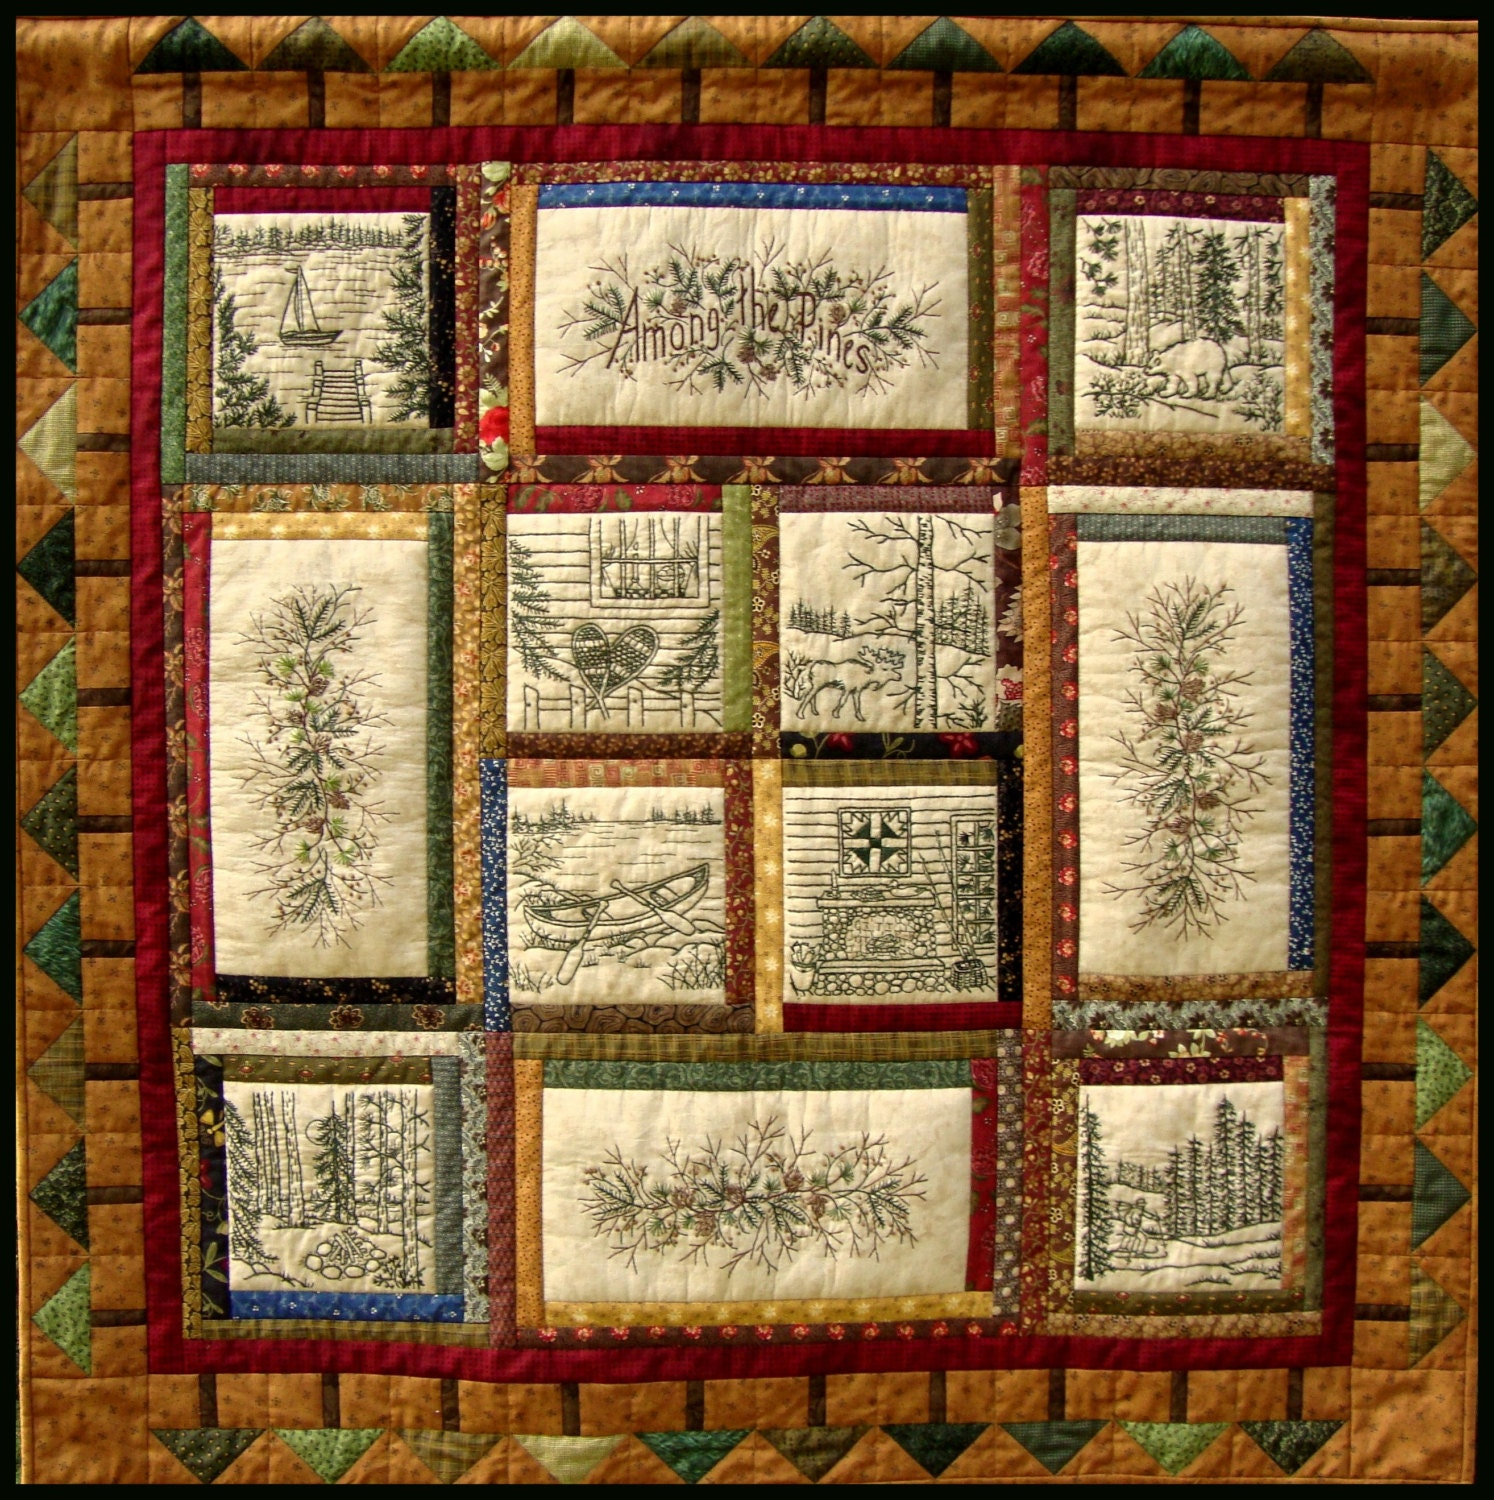 Among The Pines Quilt Pattern 10 Hand Embroidery Blocks